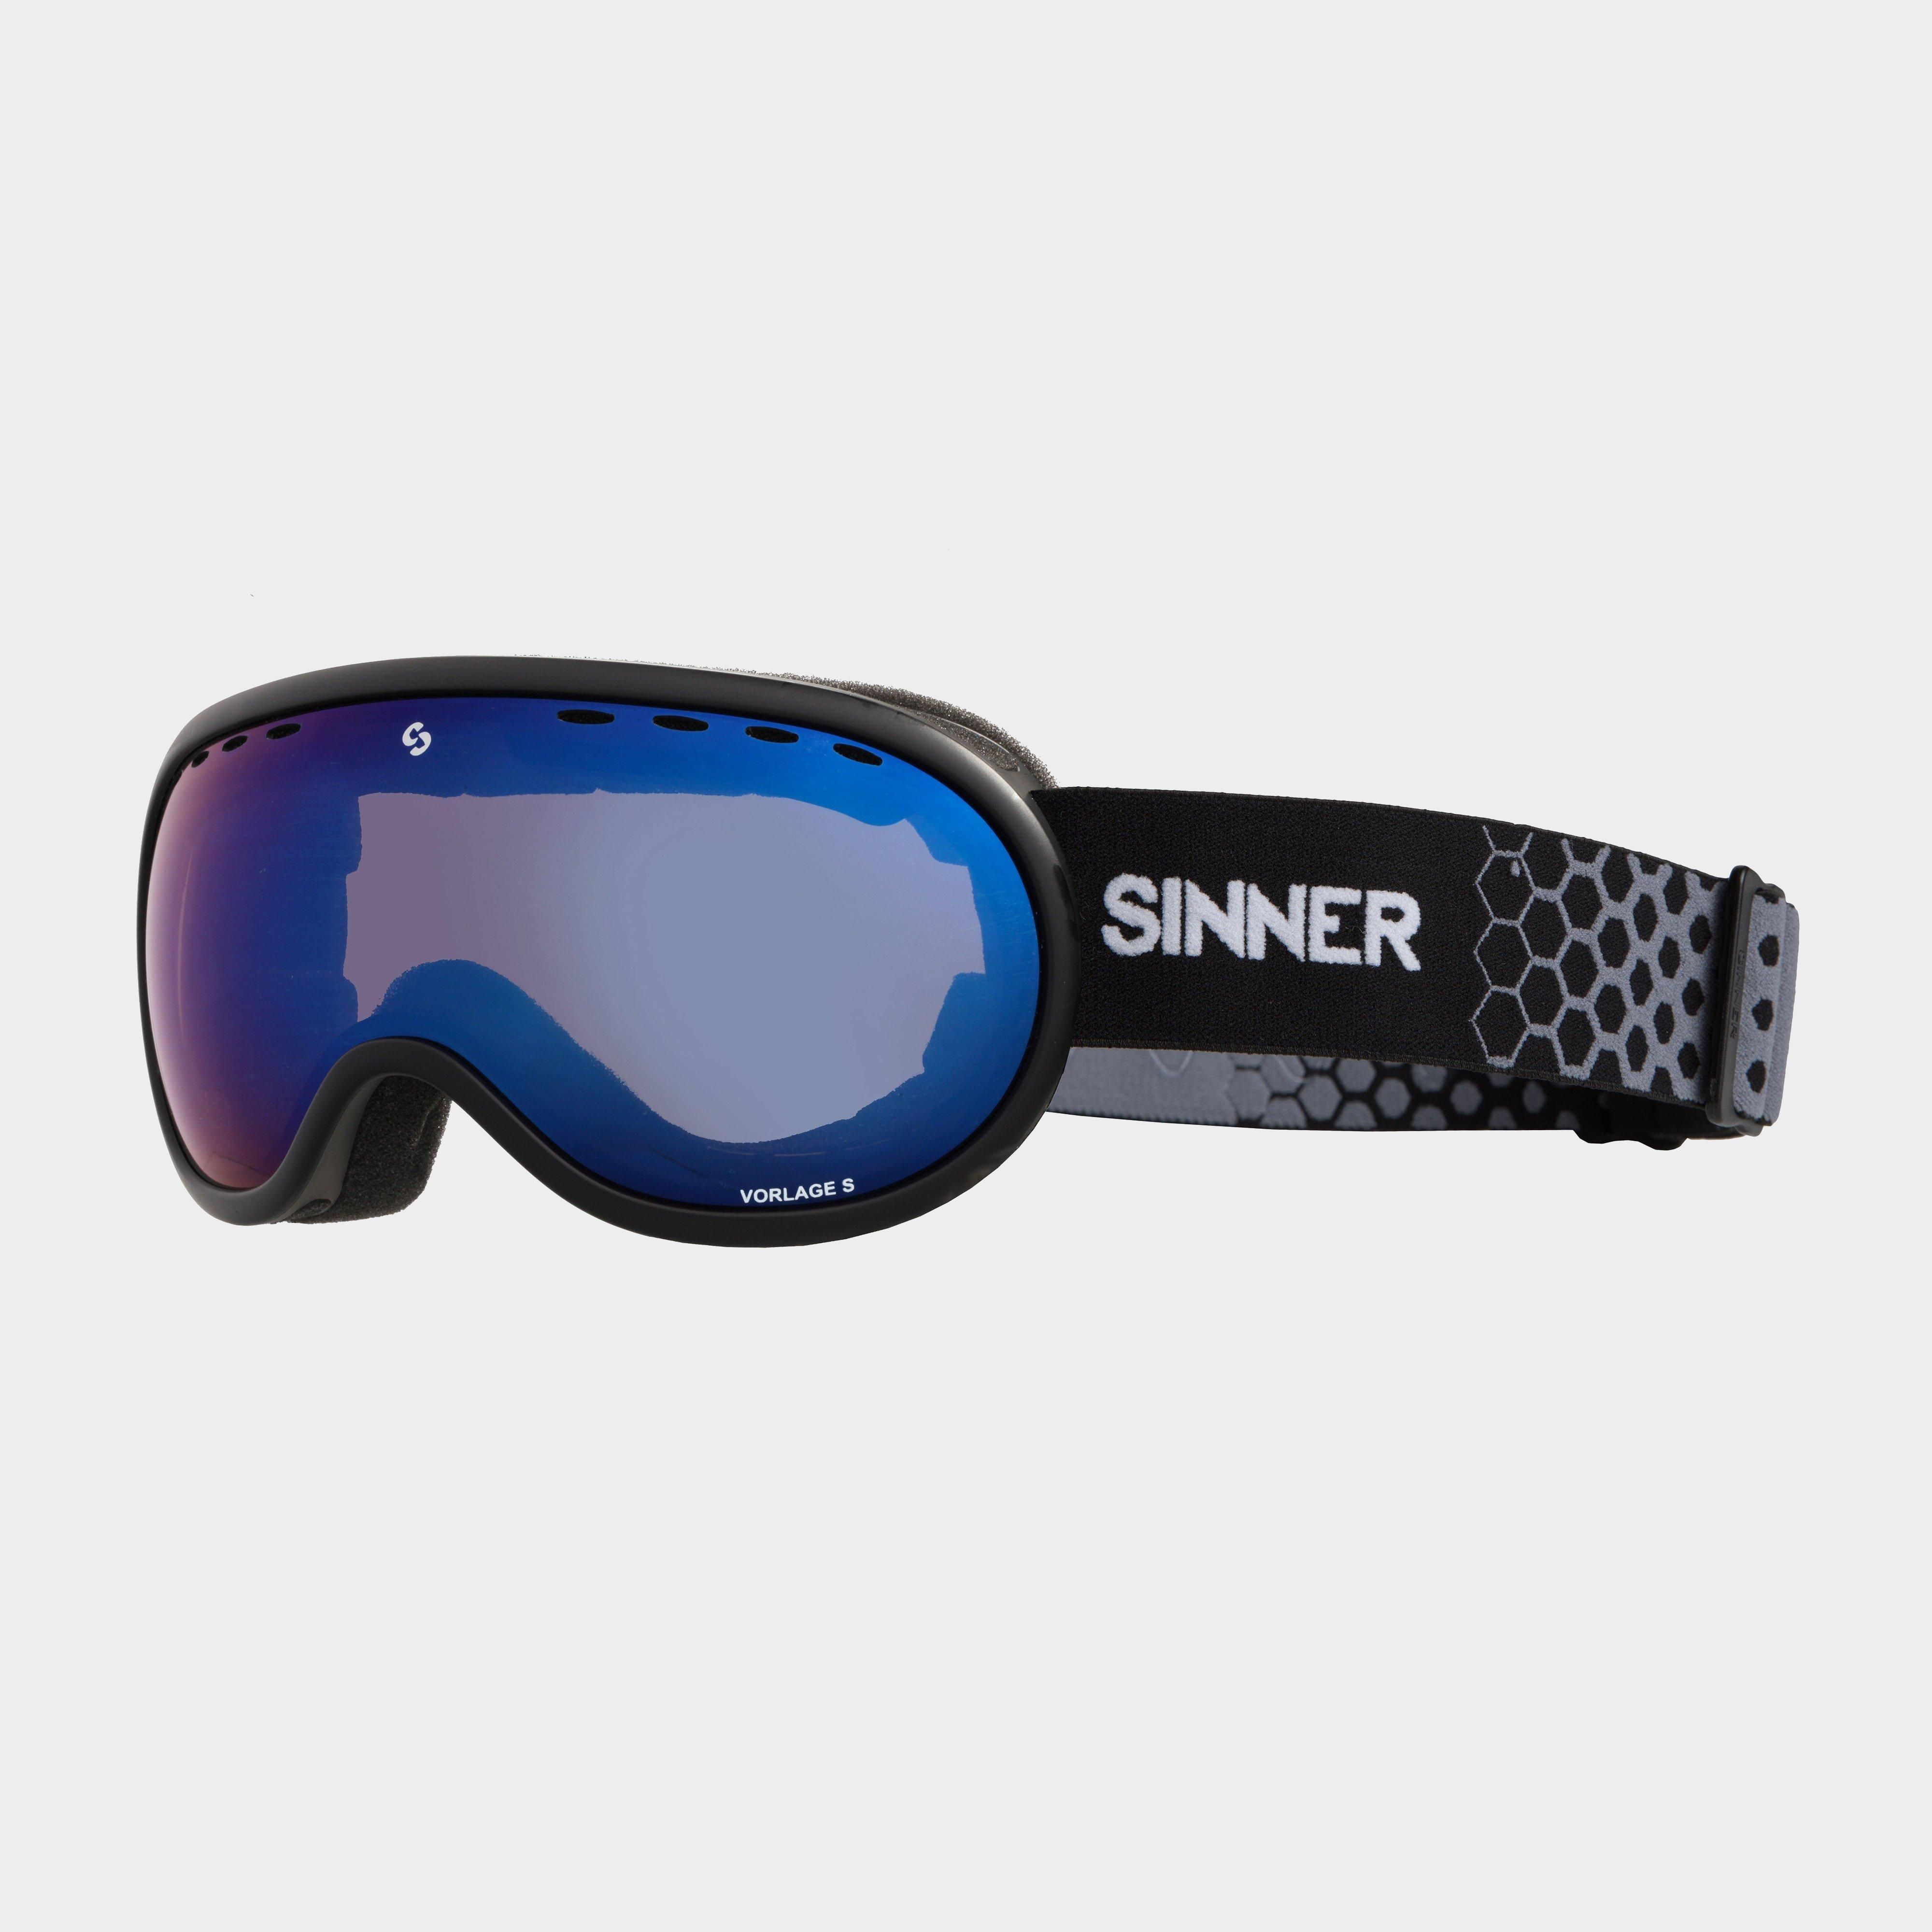 Sinner Vorlage S Blue Mirror Vent Goggles, Black/Blue